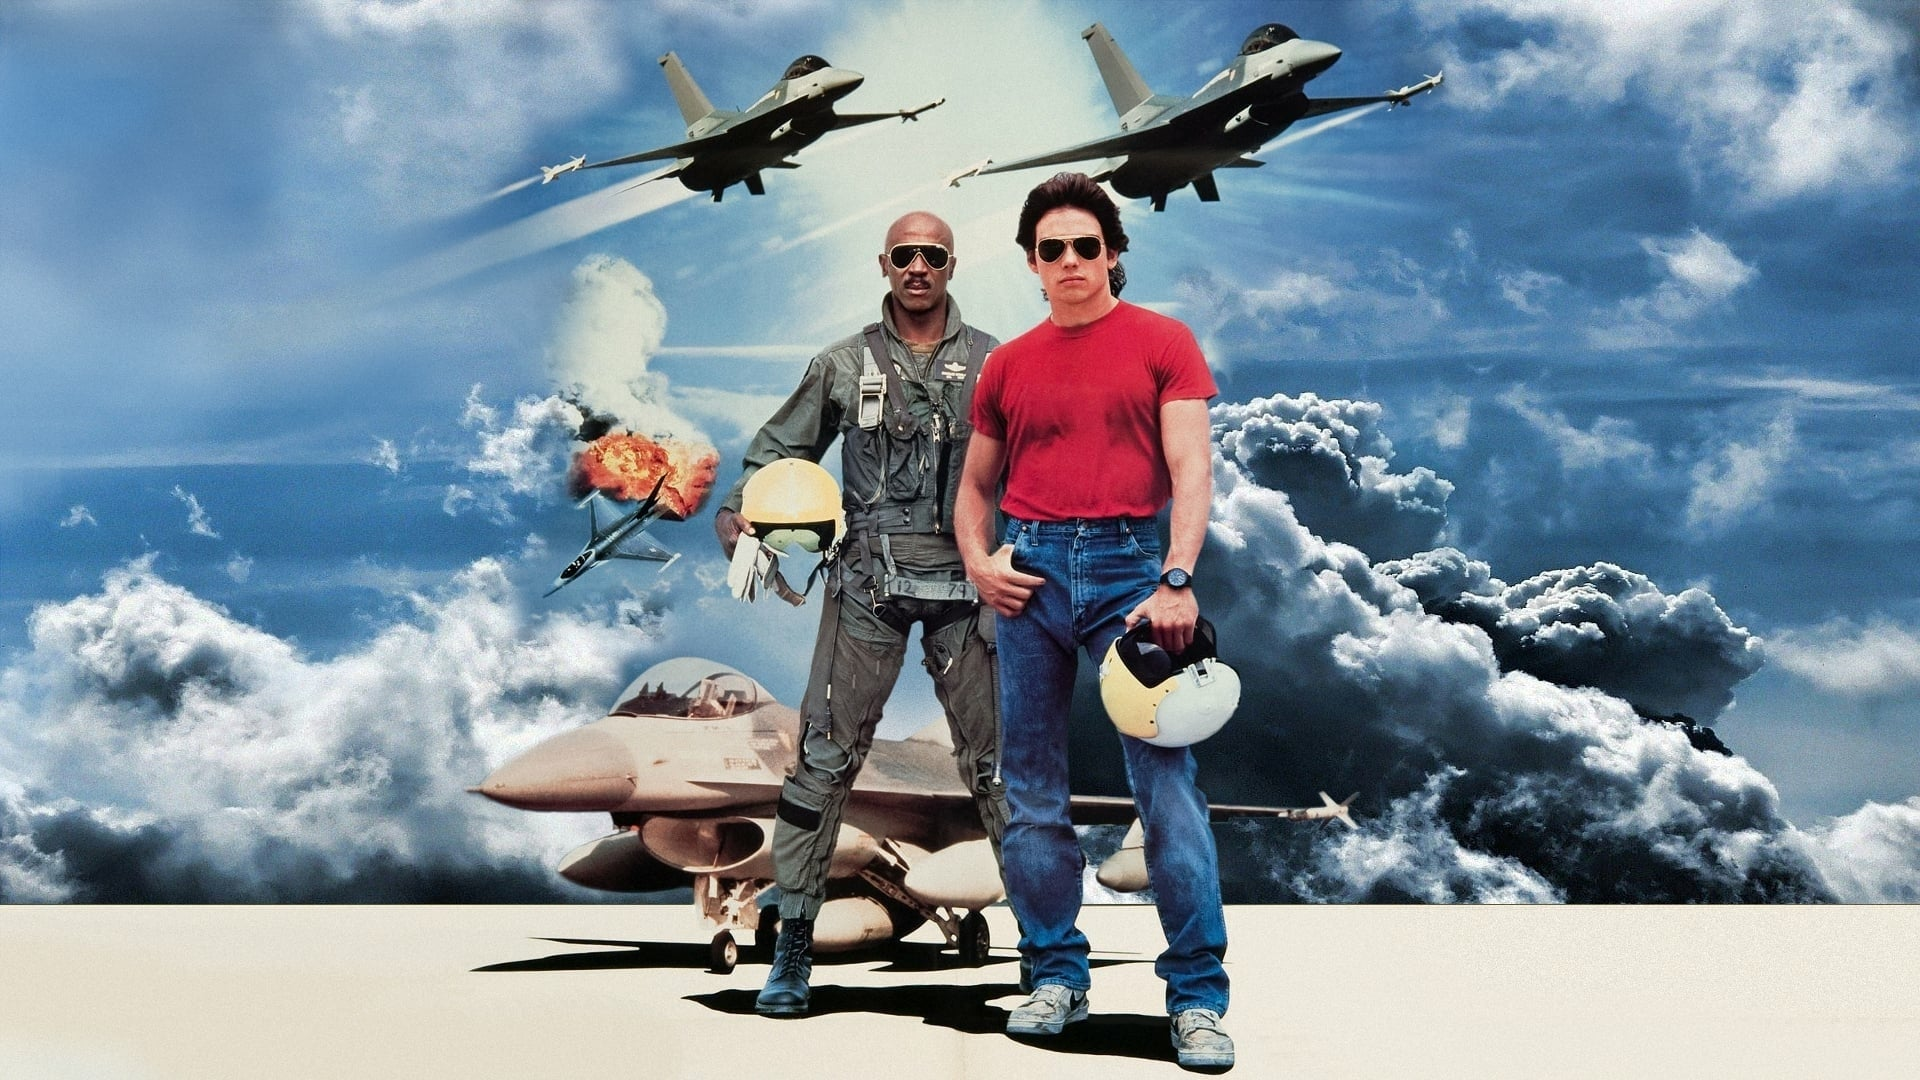 5 great military soundtracks to study or just relax to